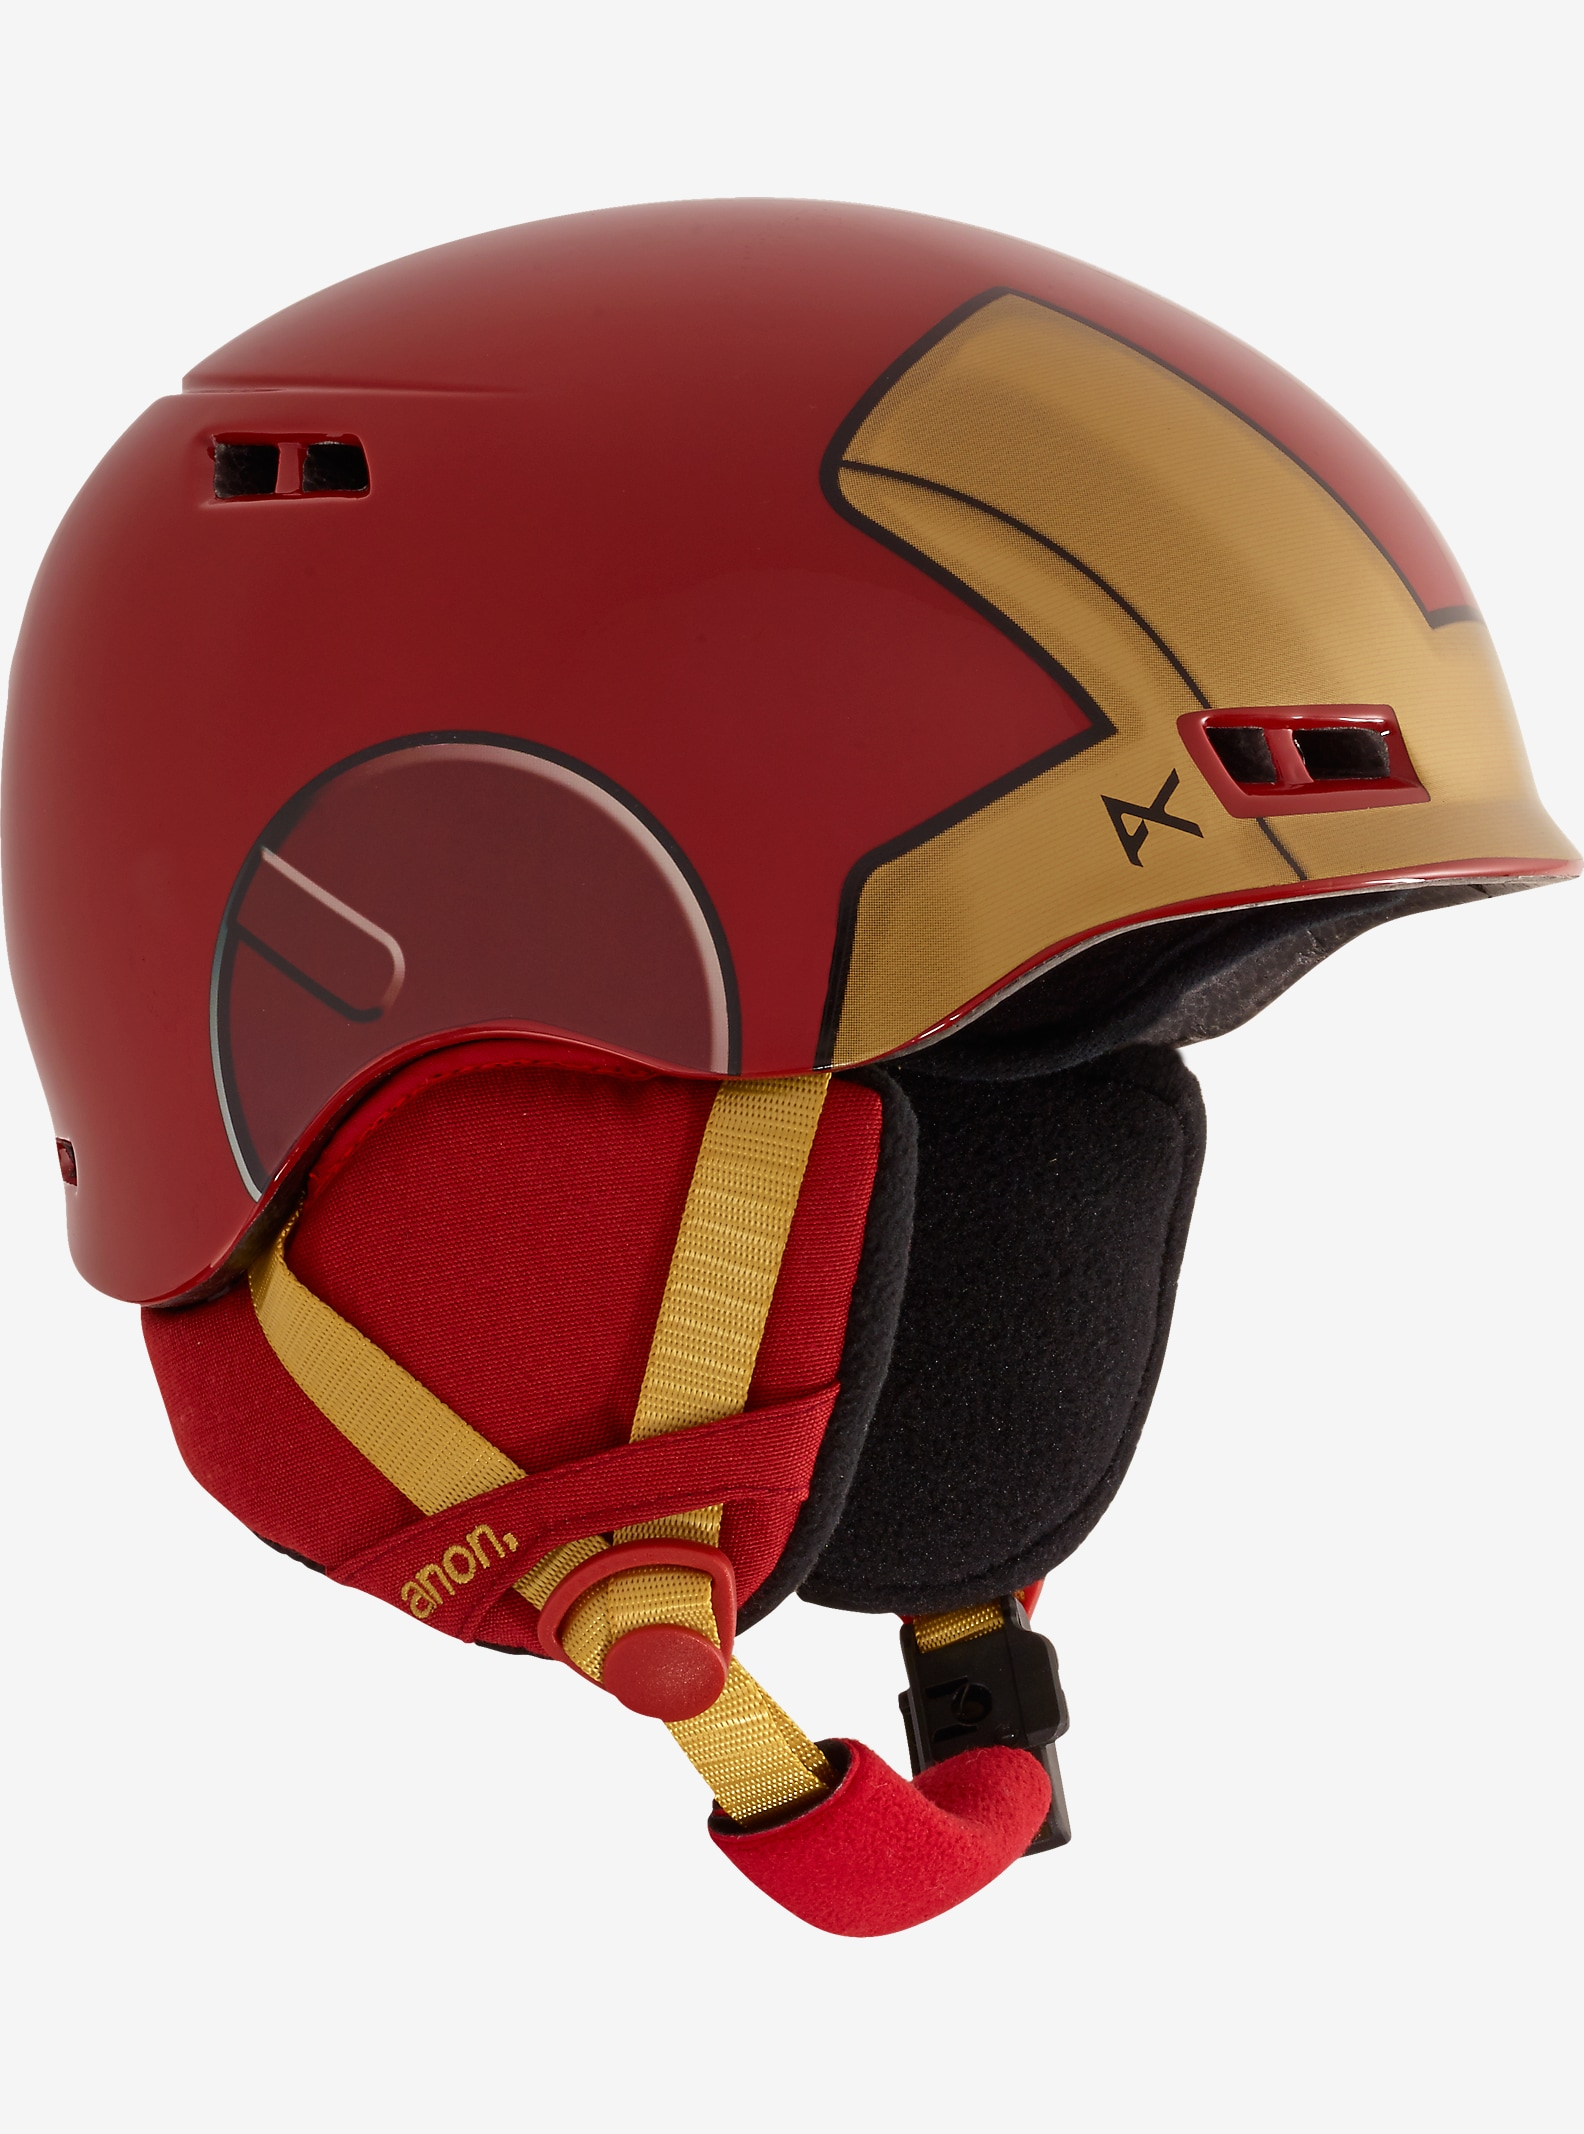 Marvel® x anon. Boys' Burner Helmet shown in Iron Man™ ©2016 Marvel & Subs.